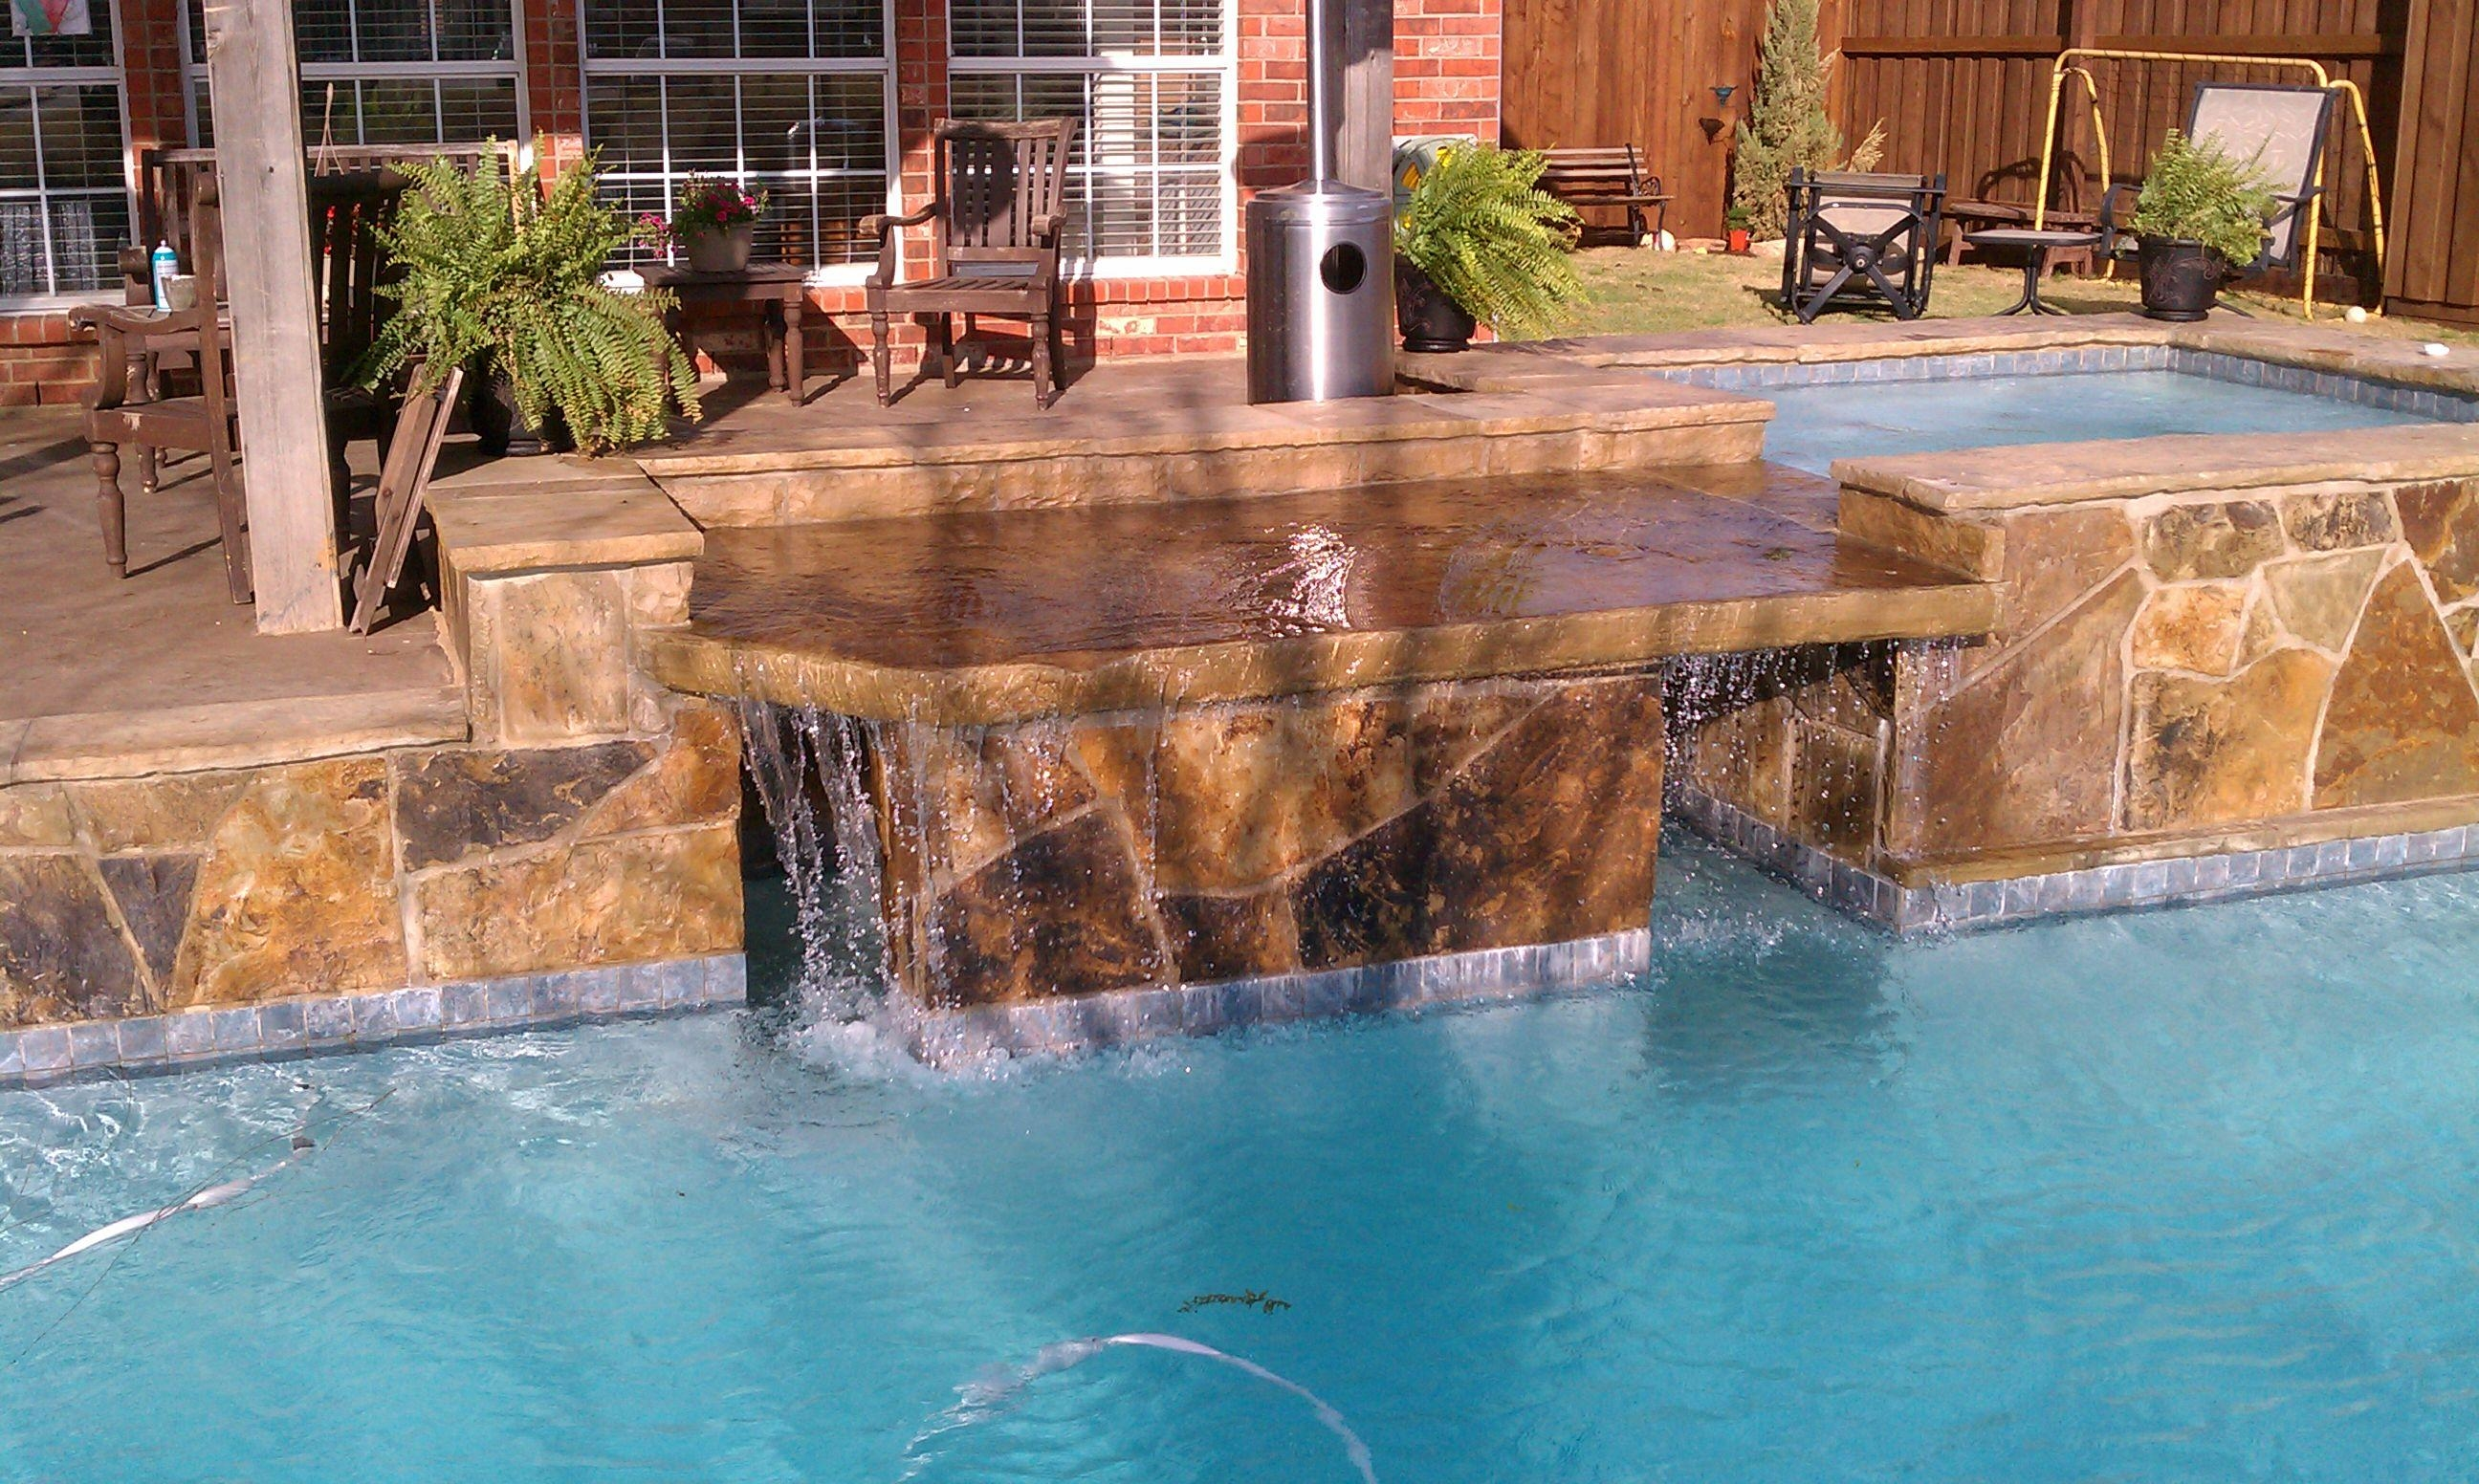 Blue Escapes Pool Spa In Plano Tx Whitepages